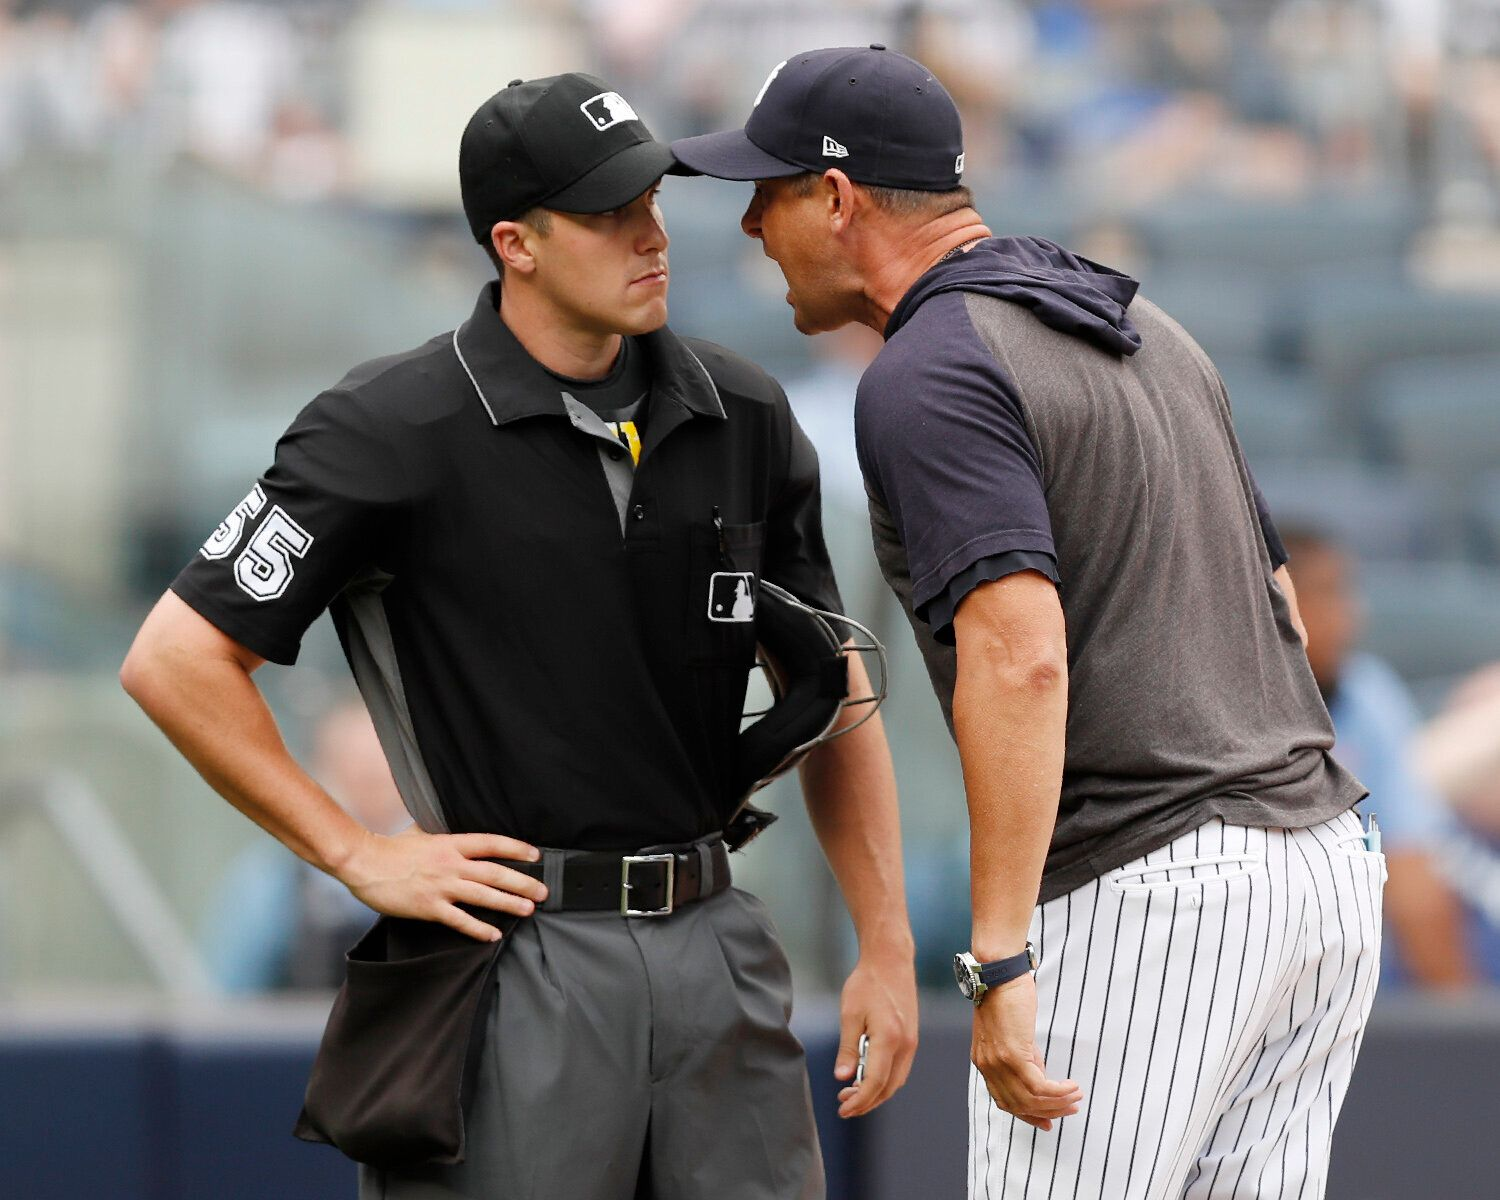 Yankees Manager Has A 'F**king Savage' Meltdown And Fans On Twitter Love It